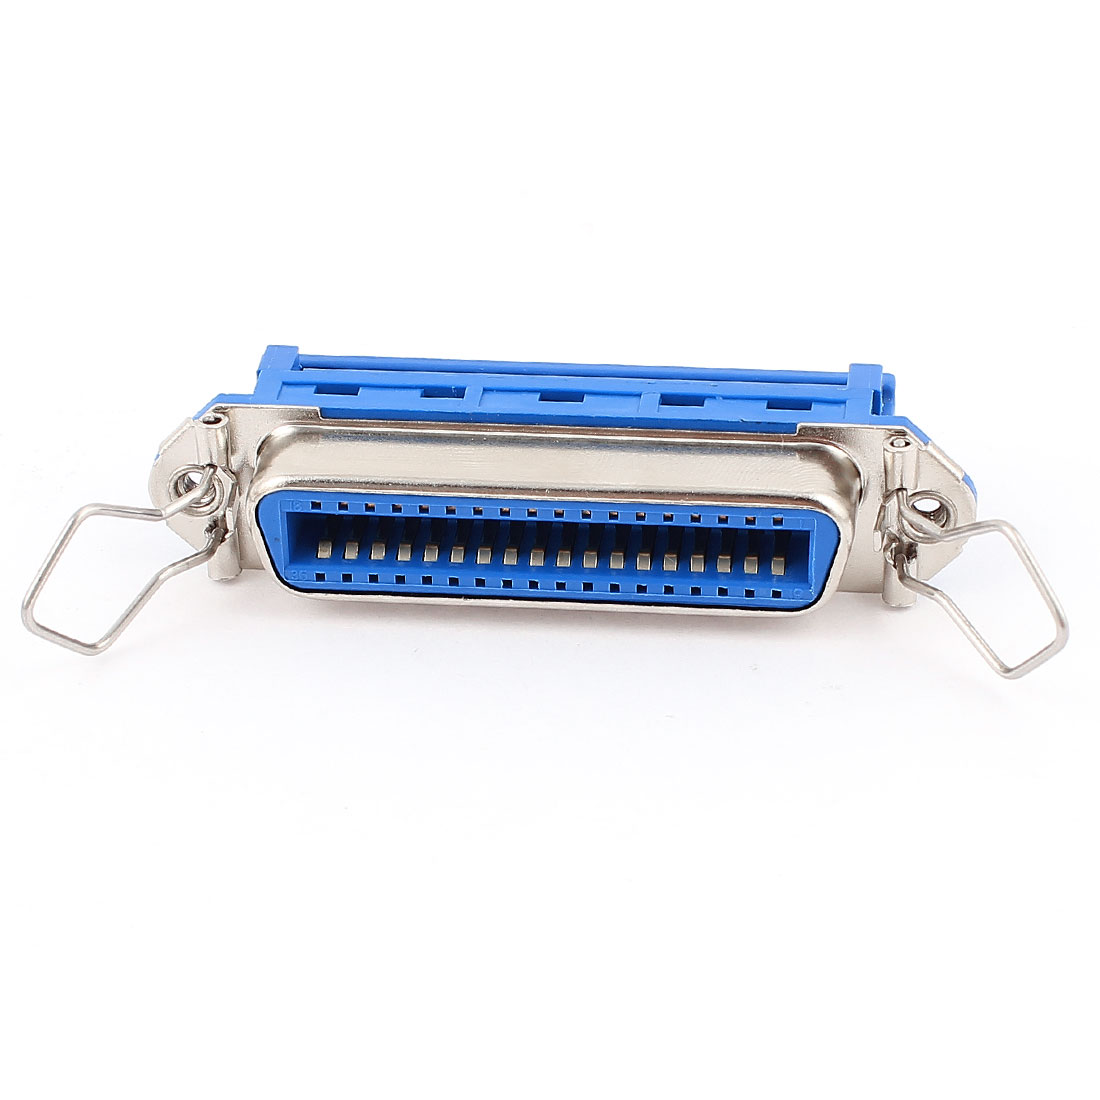 CN 36Pin Centronics Female Crimp Connector IDC Type Printer Adapter for Flat Ribbon Cable